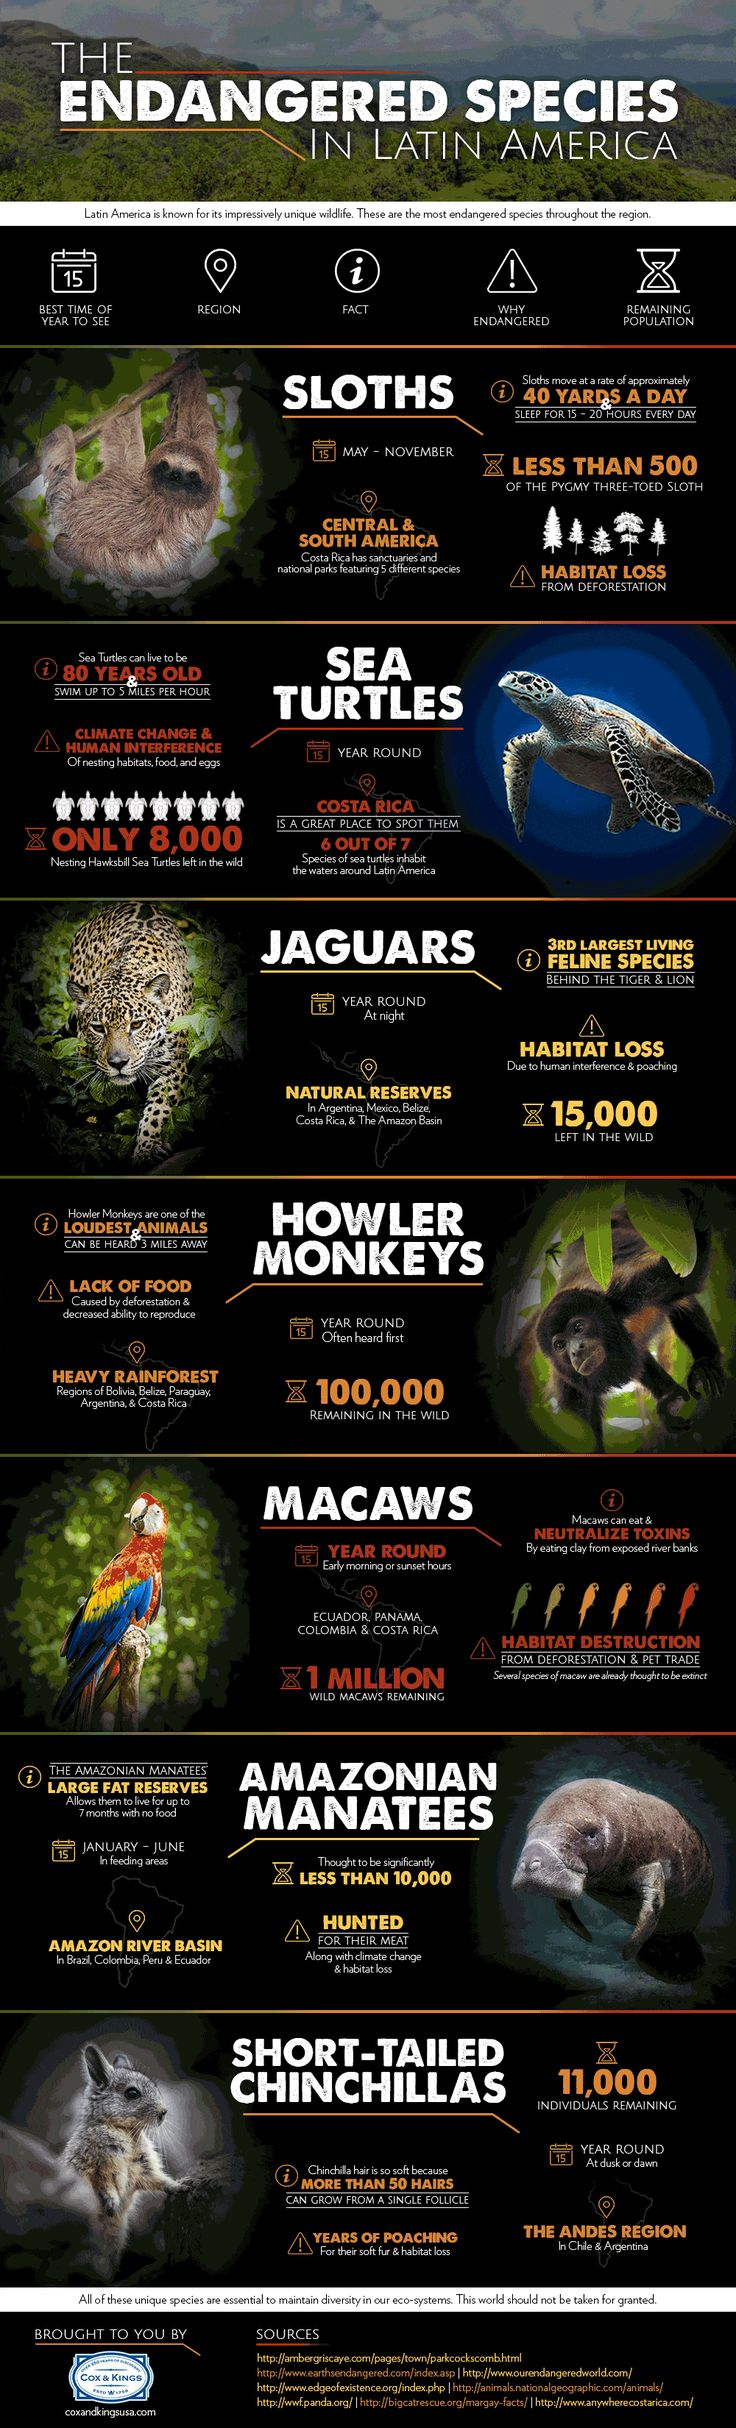 Latin America is known for its impressively unique wildlife. We have compiled a list of endangered species from the region that are vital to the eco-system in order to raise awareness.